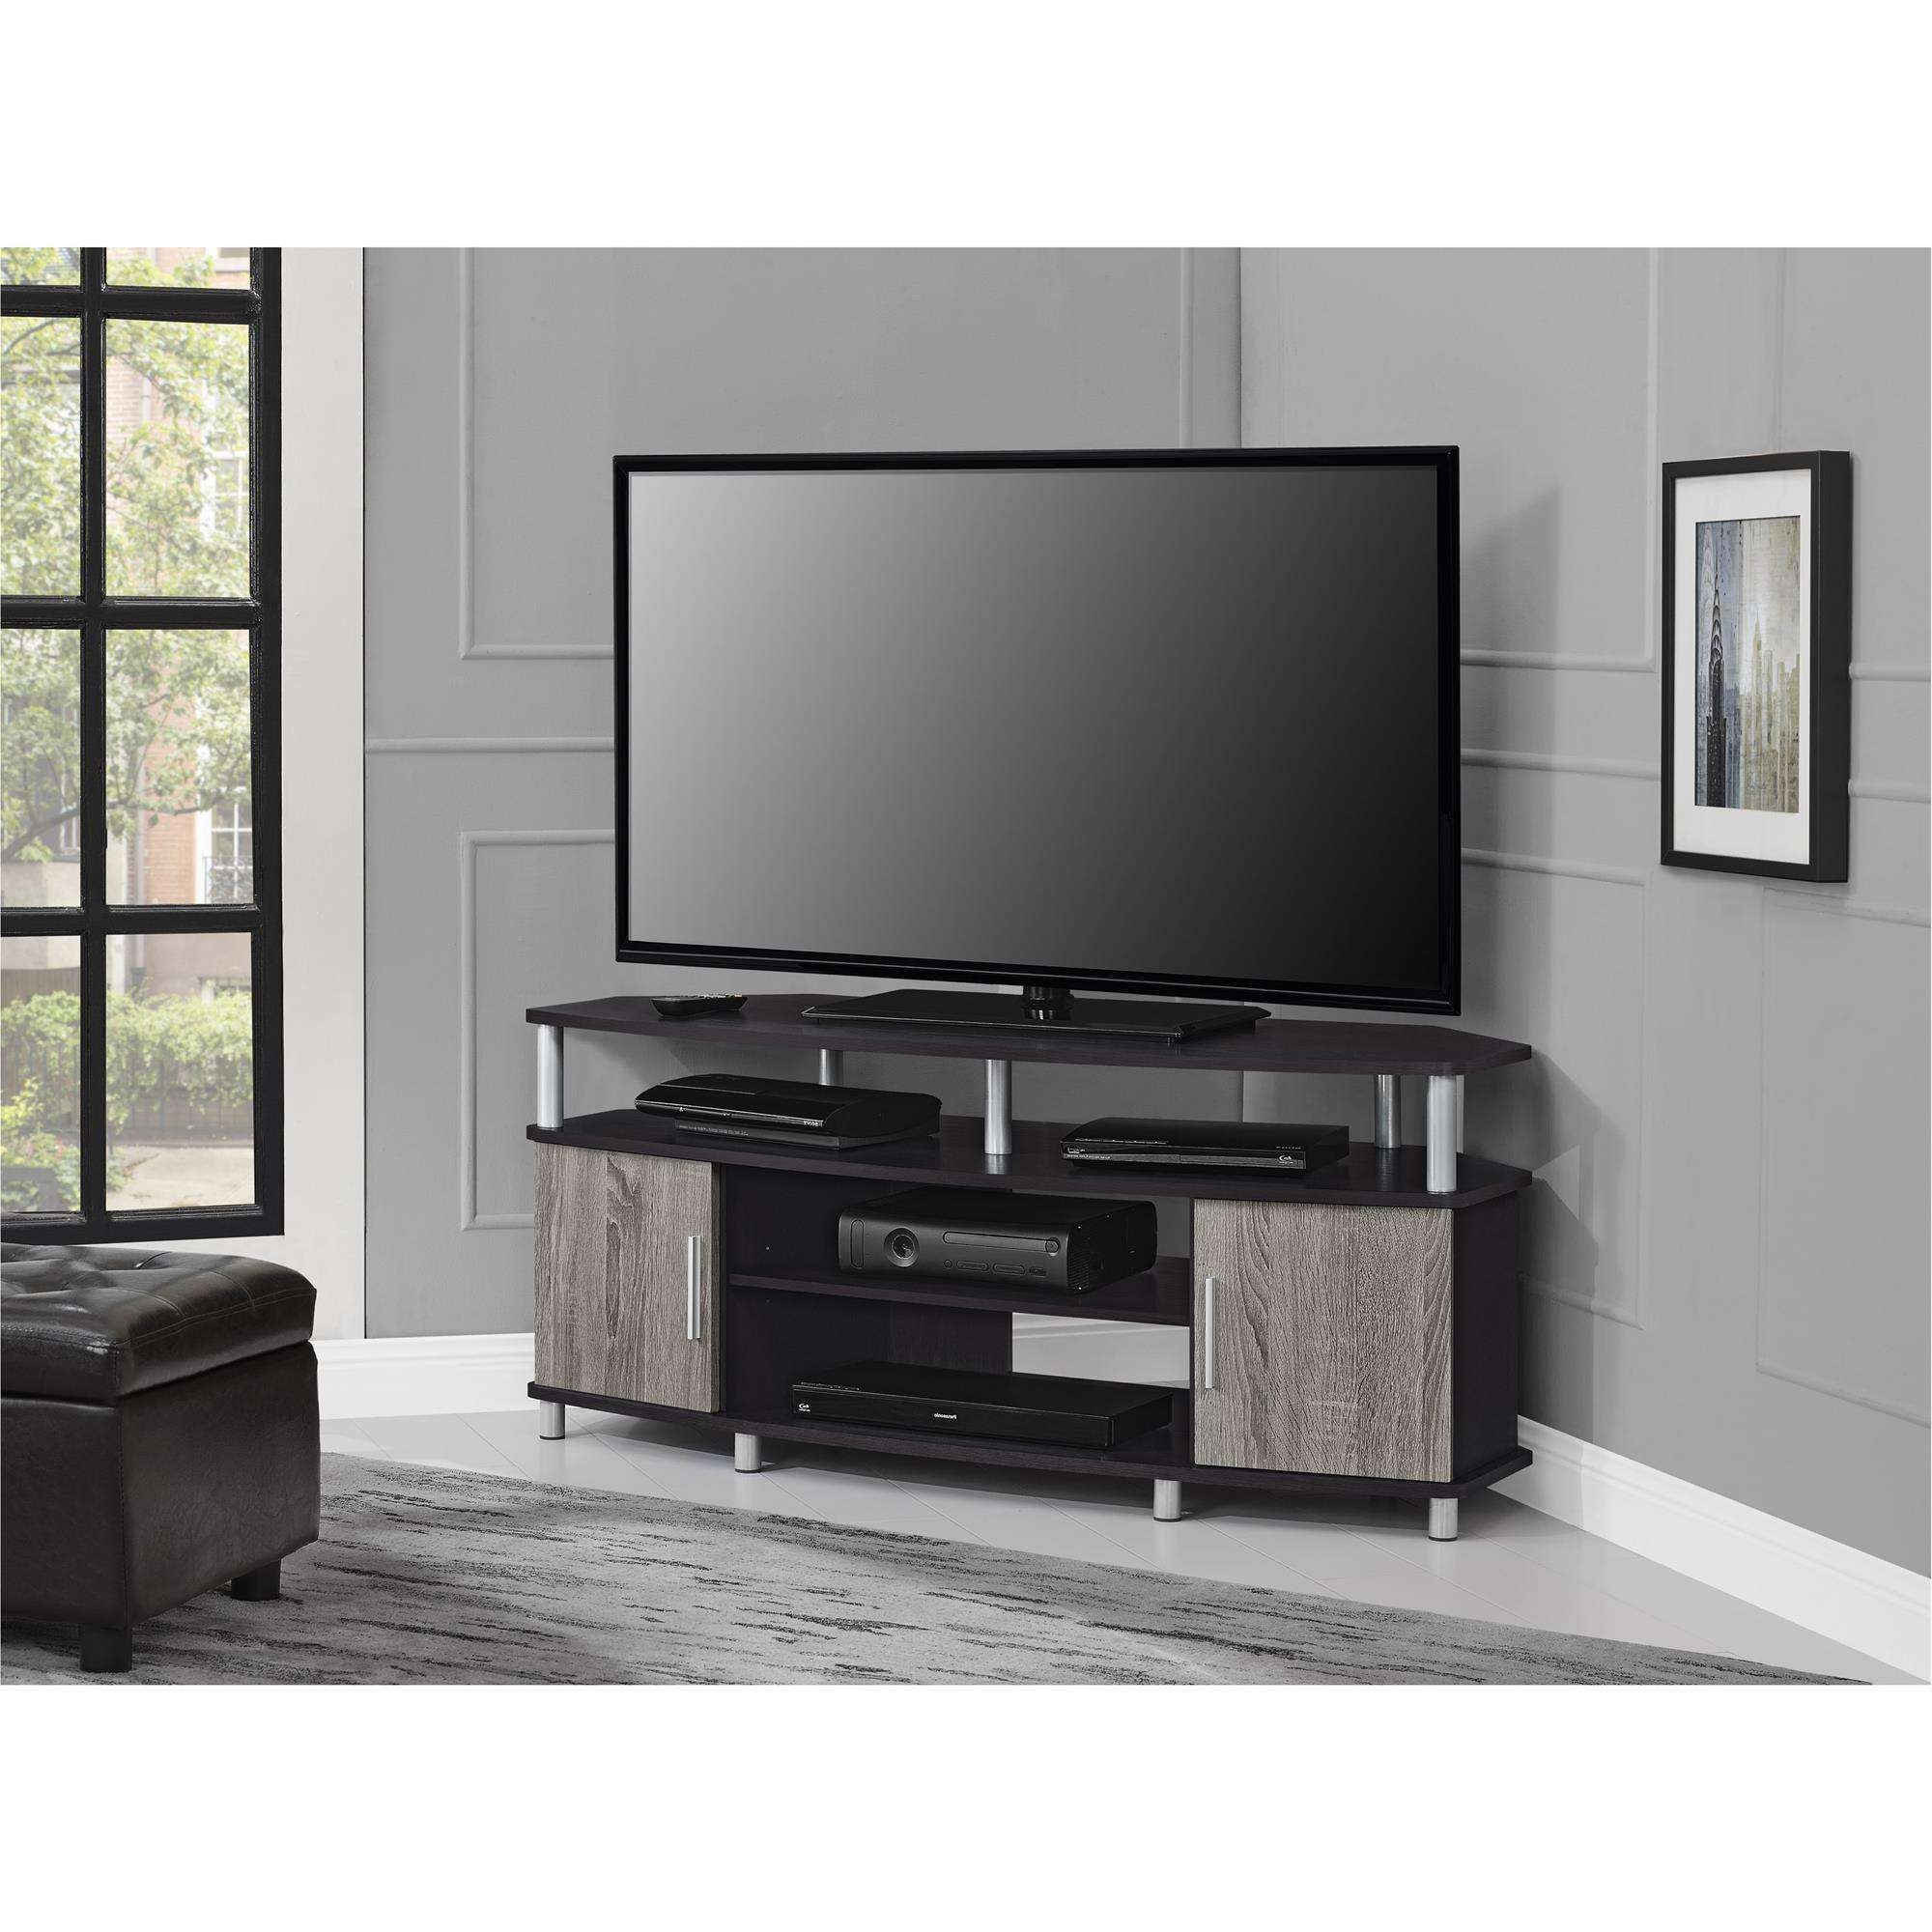 Tv Stands For Inch Furnitures Stylist Corner Stand Flat Screen Inside 55 Inch Corner Tv Stands (View 20 of 20)